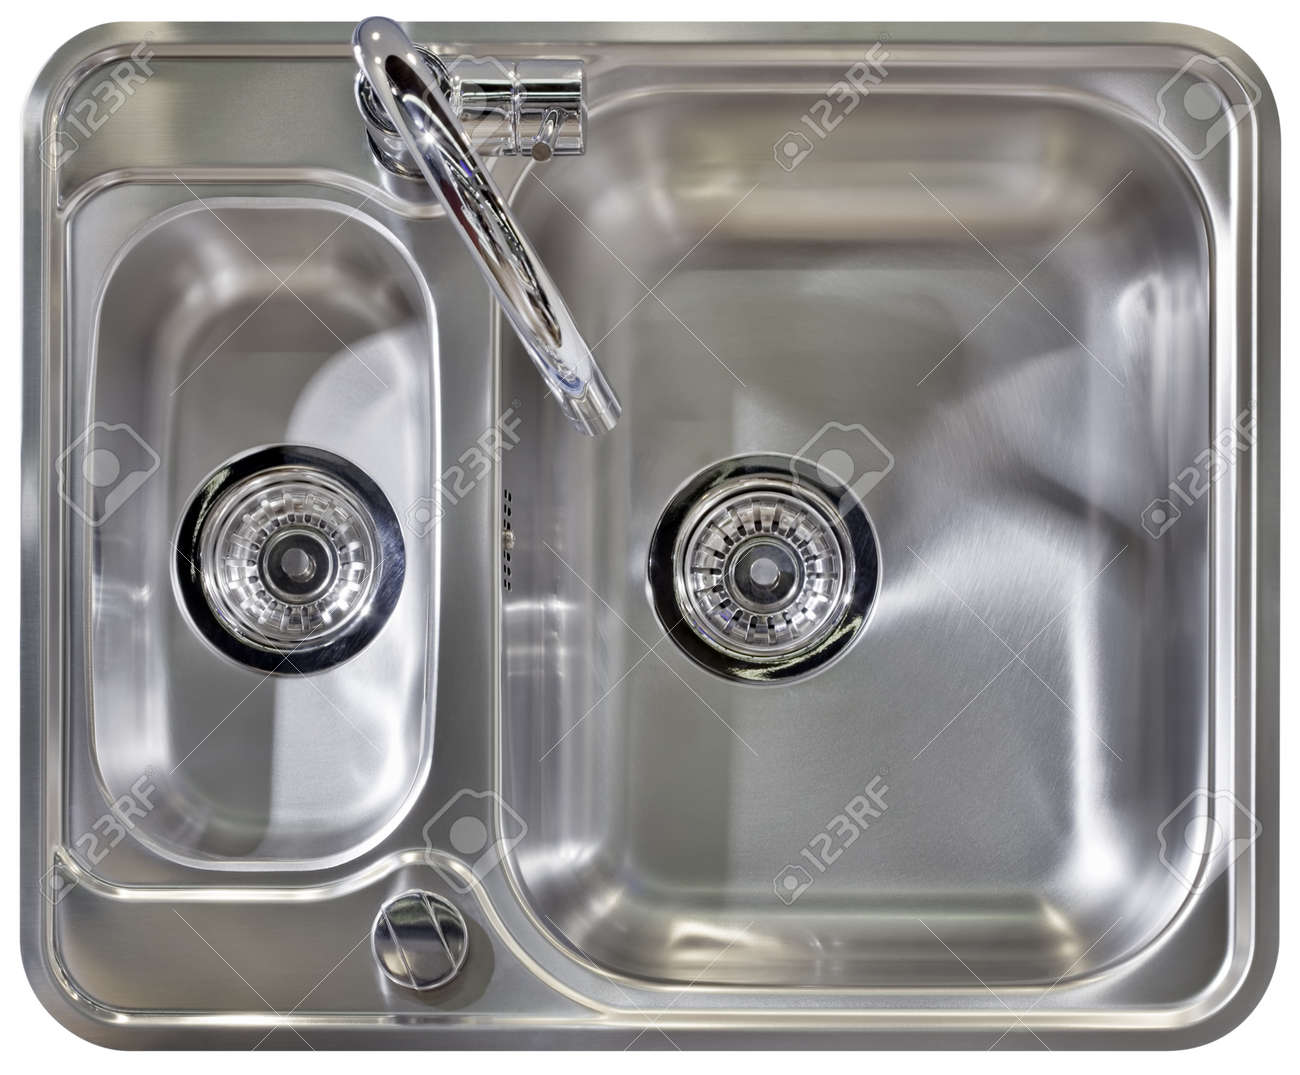 Stainless Water Tap and Wash Sinks Isolated Standard-Bild - 16261083